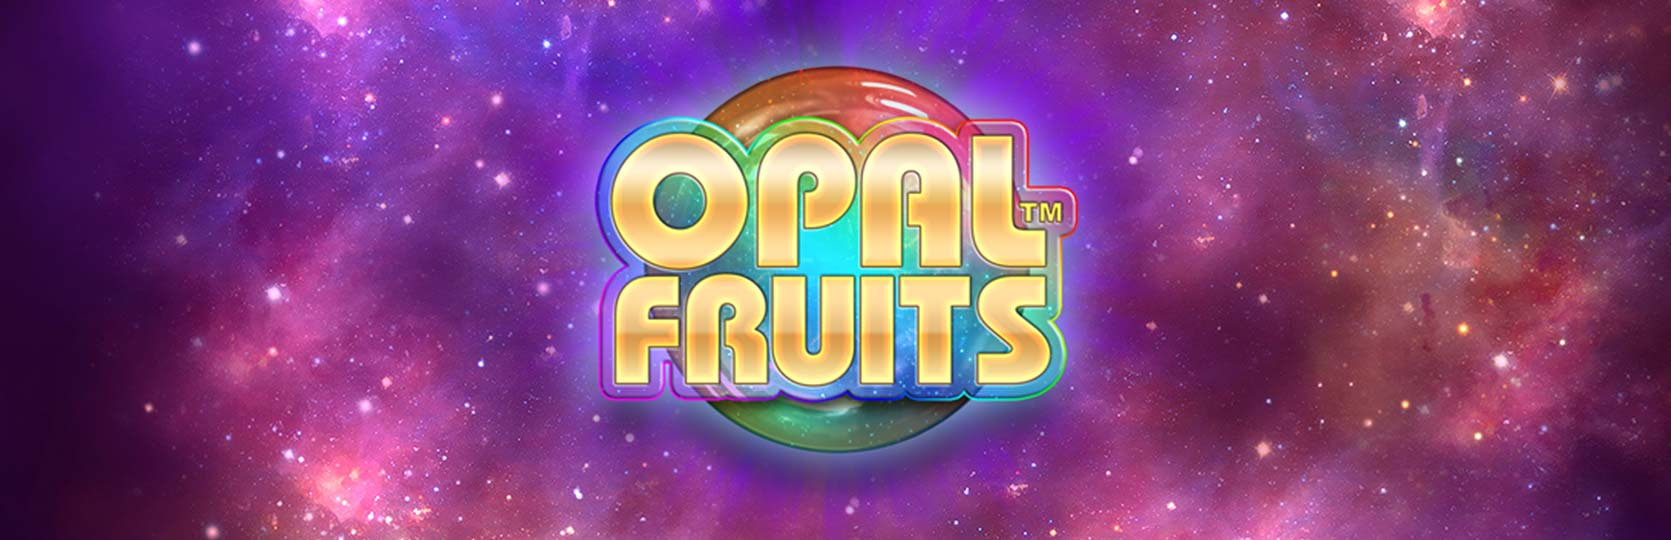 Opal Fruits Games Banner